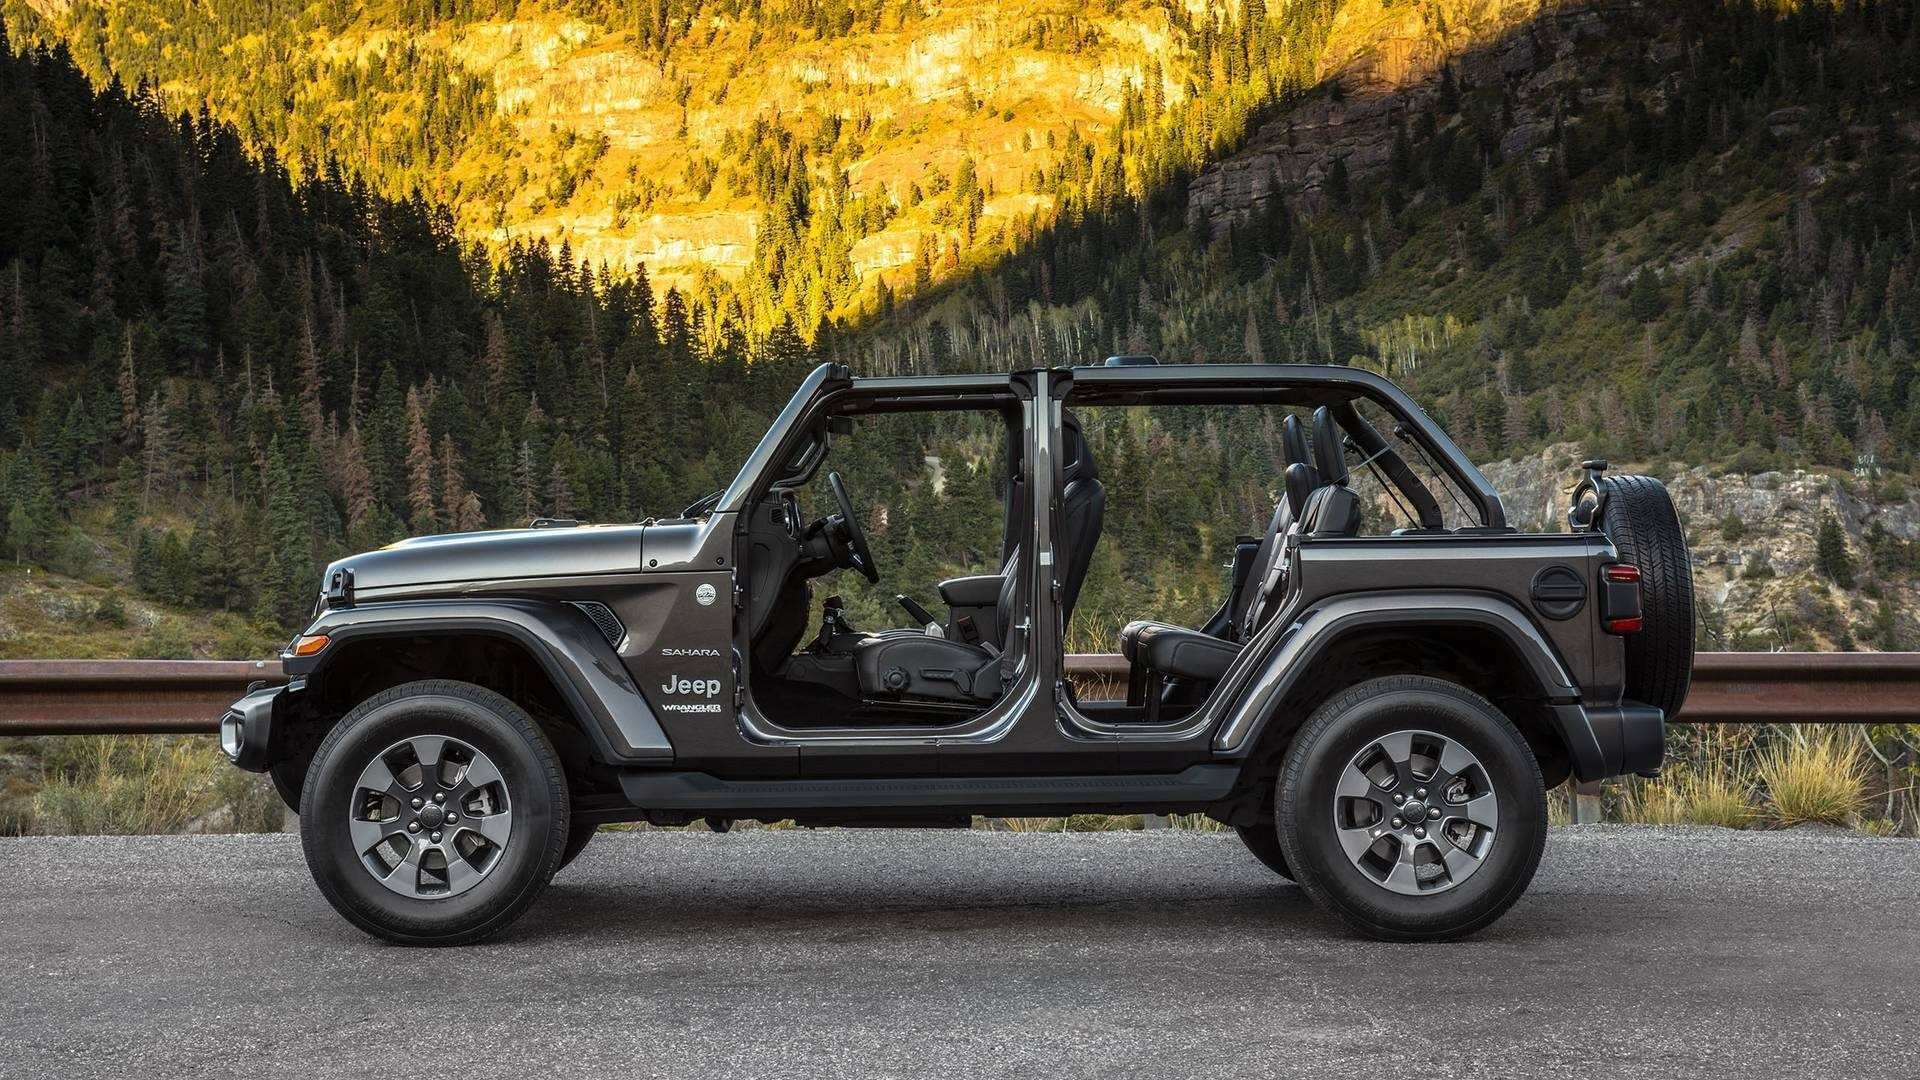 71 The Best When Will 2020 Jeep Wrangler Be Available Release Date